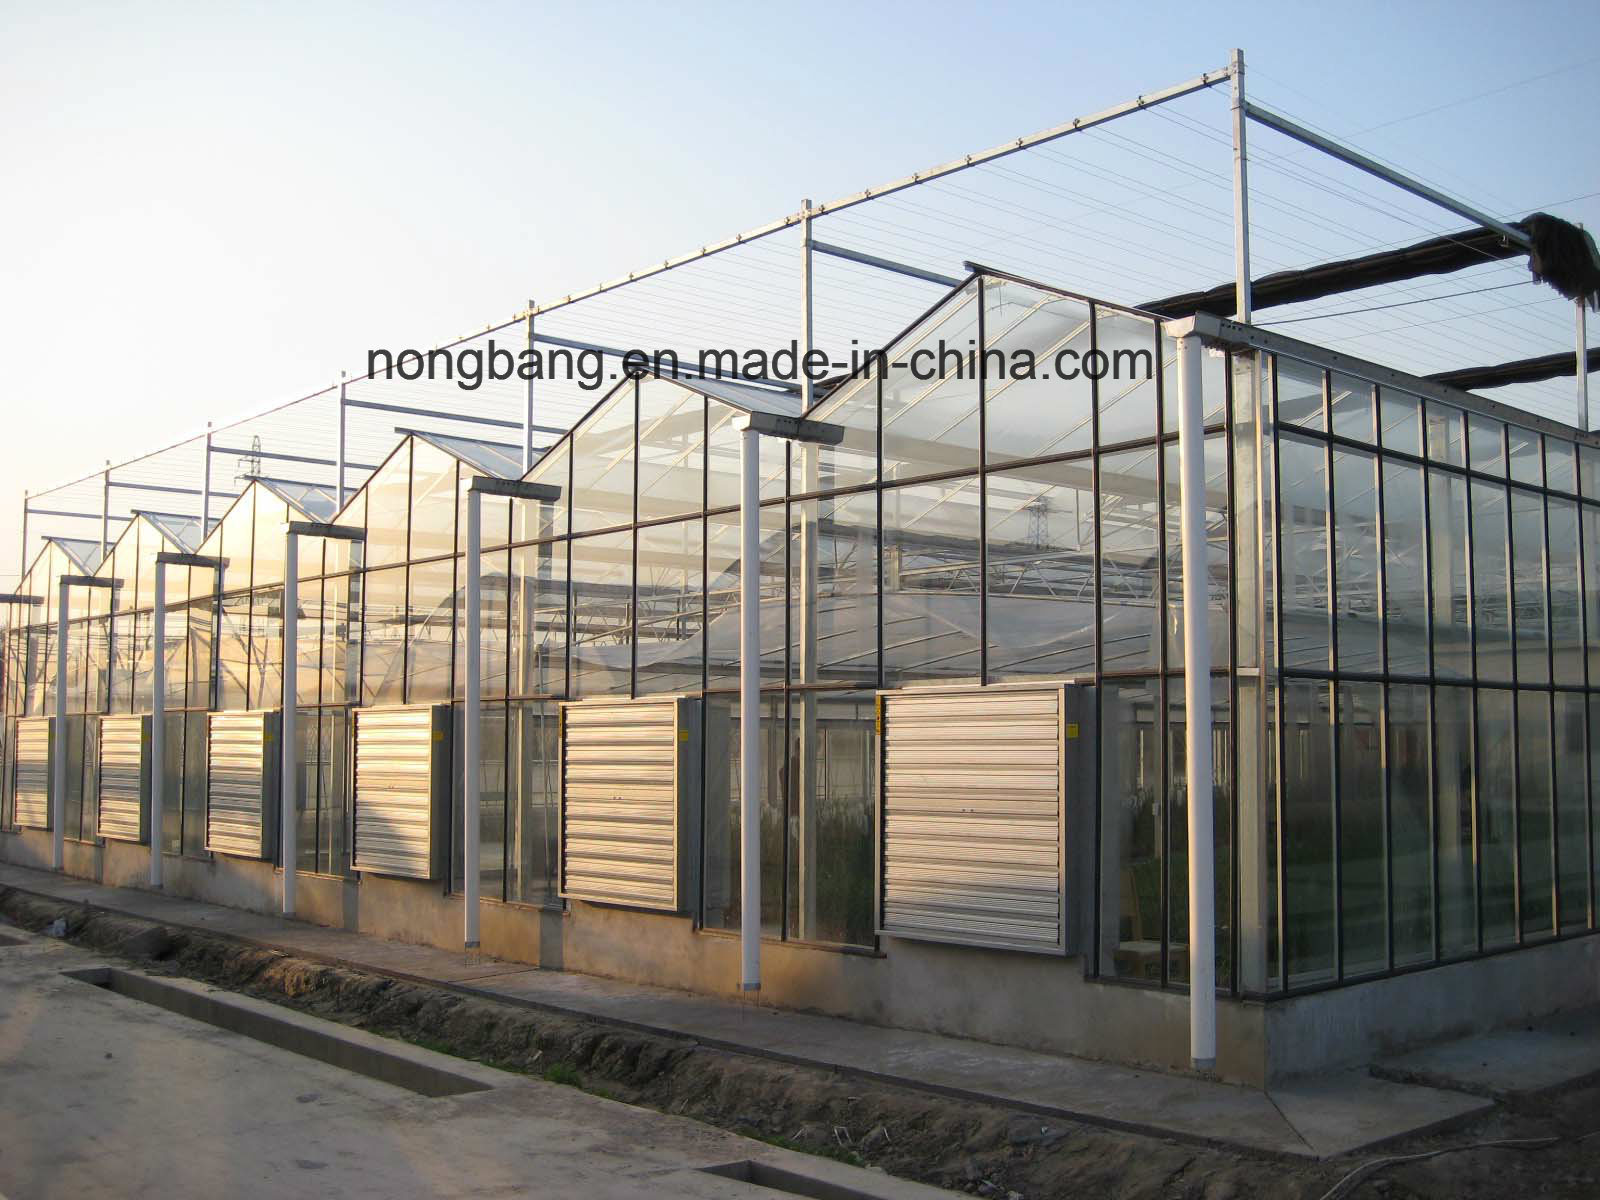 Low Cost Tropical Agricultural Greenhouse